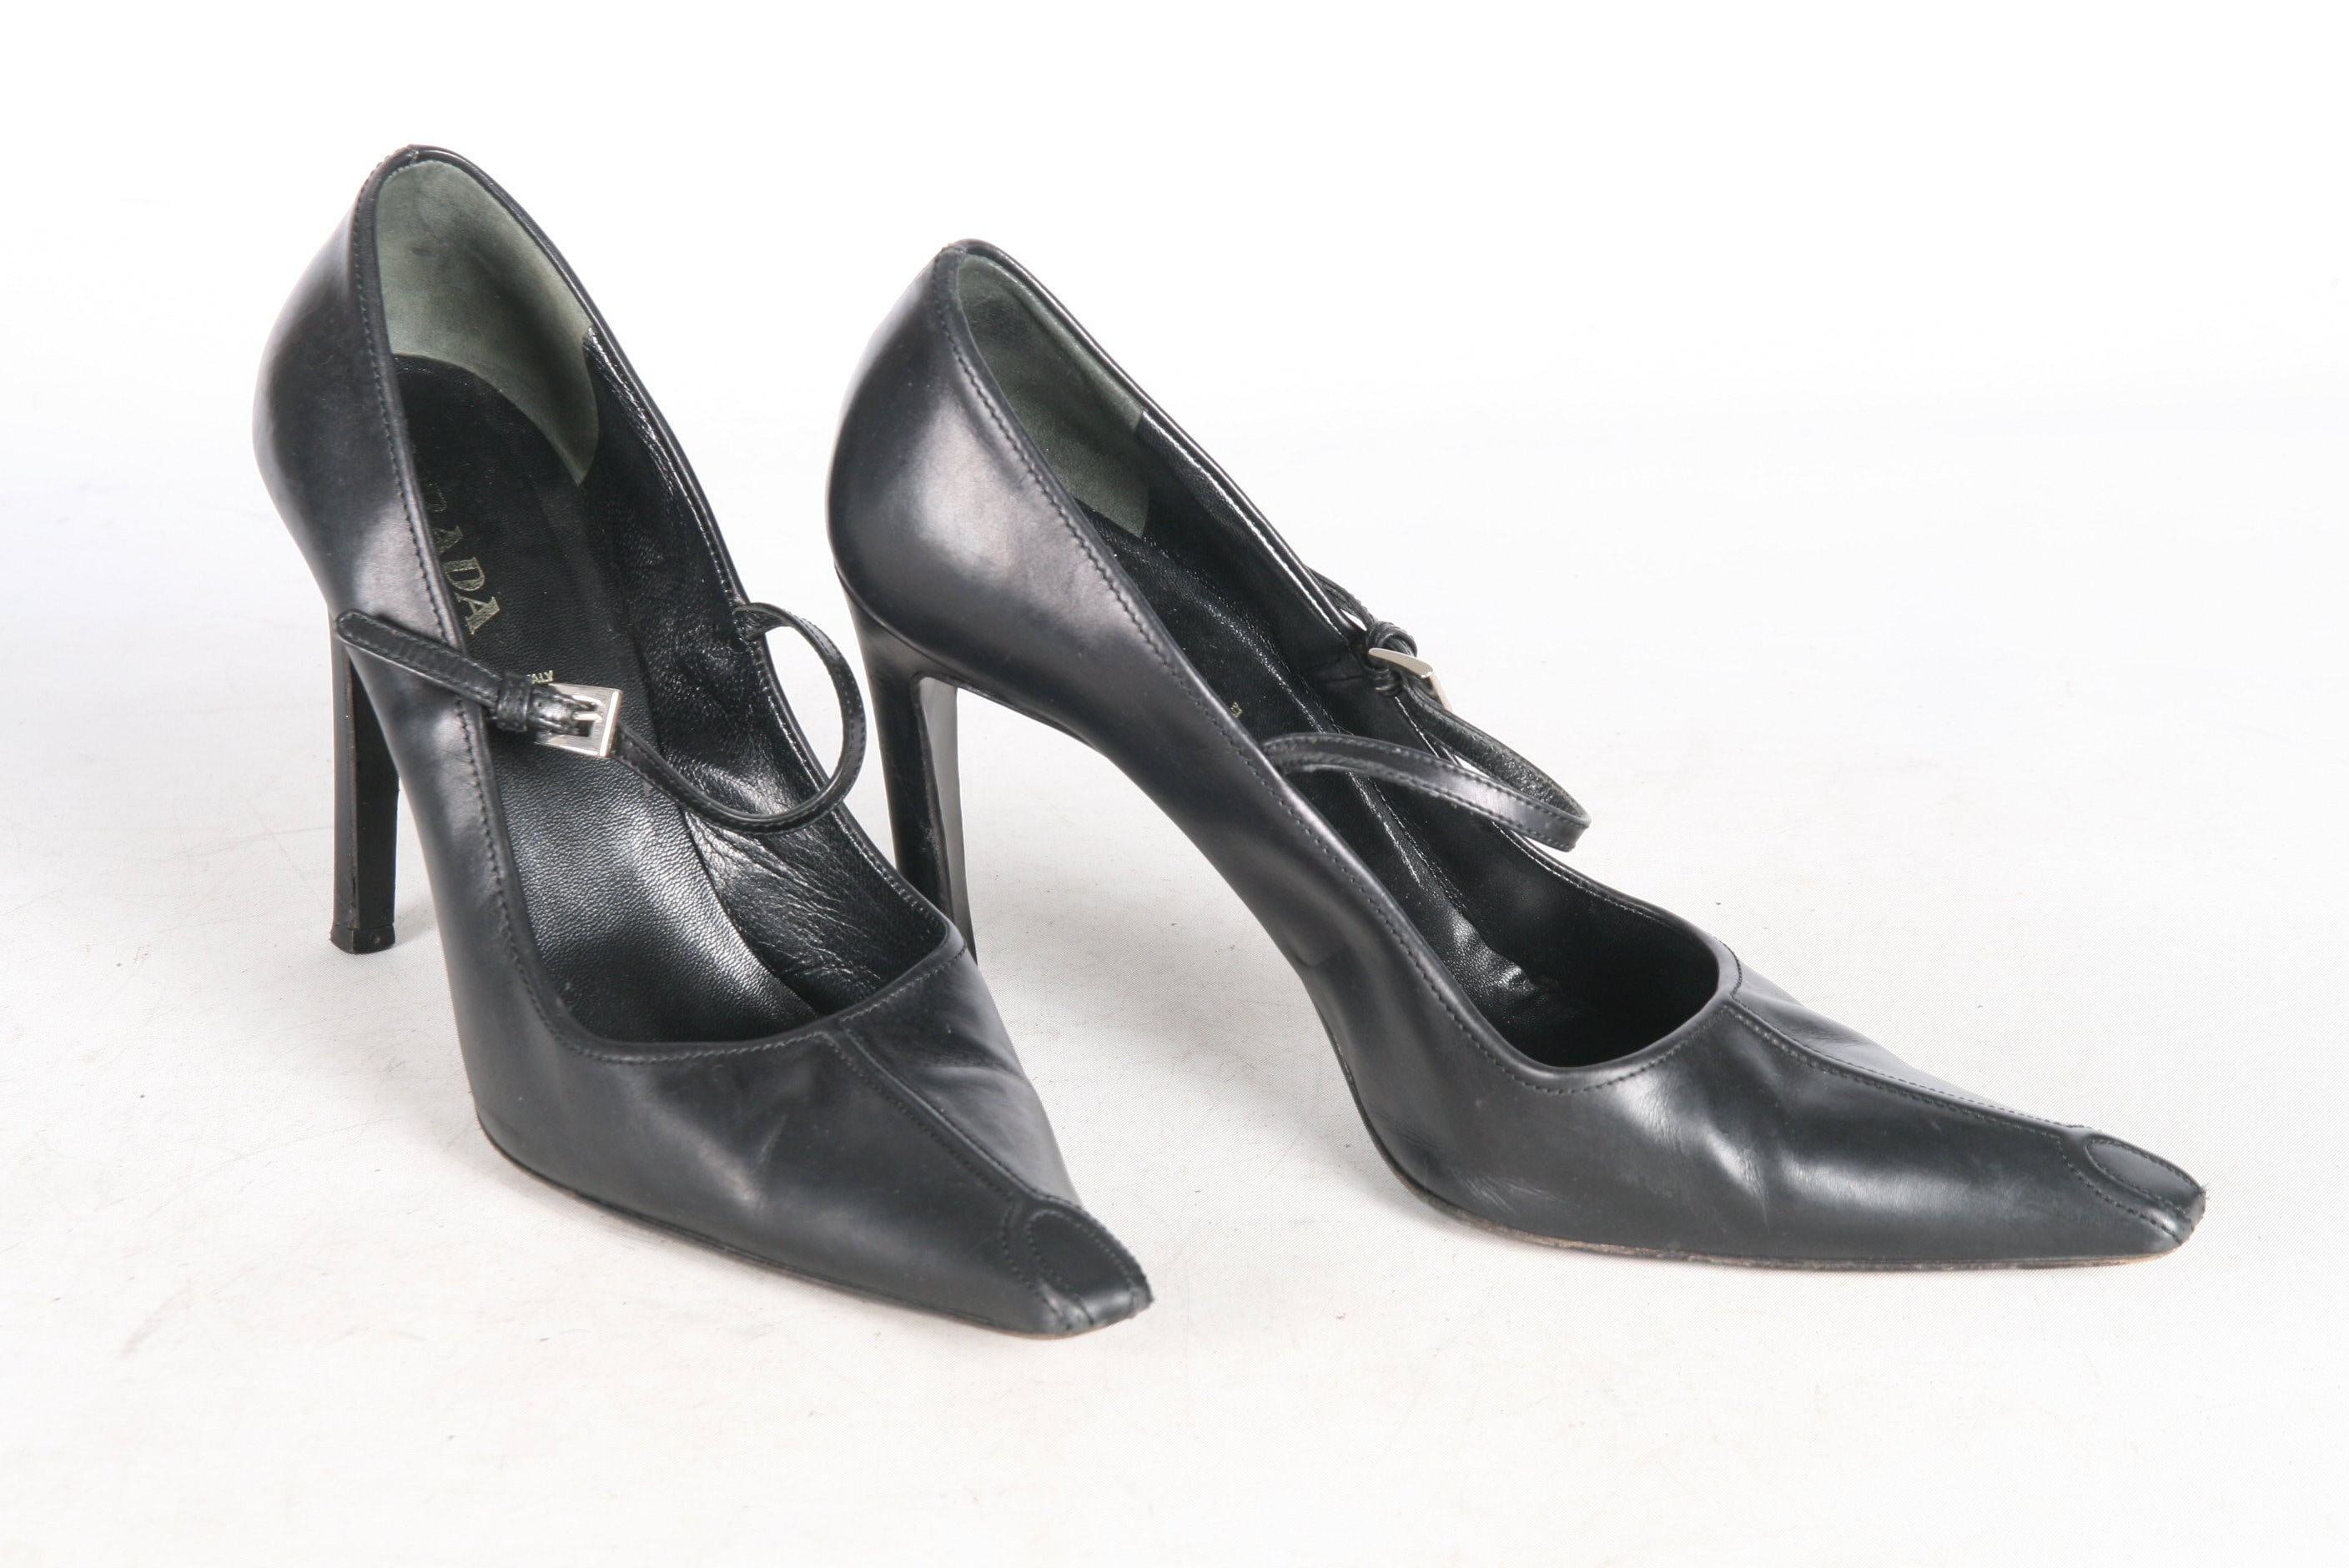 9e2b75d769f95 Prada Black 90s Heels EU 39 AU 8.5 Made In ITALY Pointy Toe Soft Leather  Vintage Stiletto Pumps 90s Mary Janes Shoes